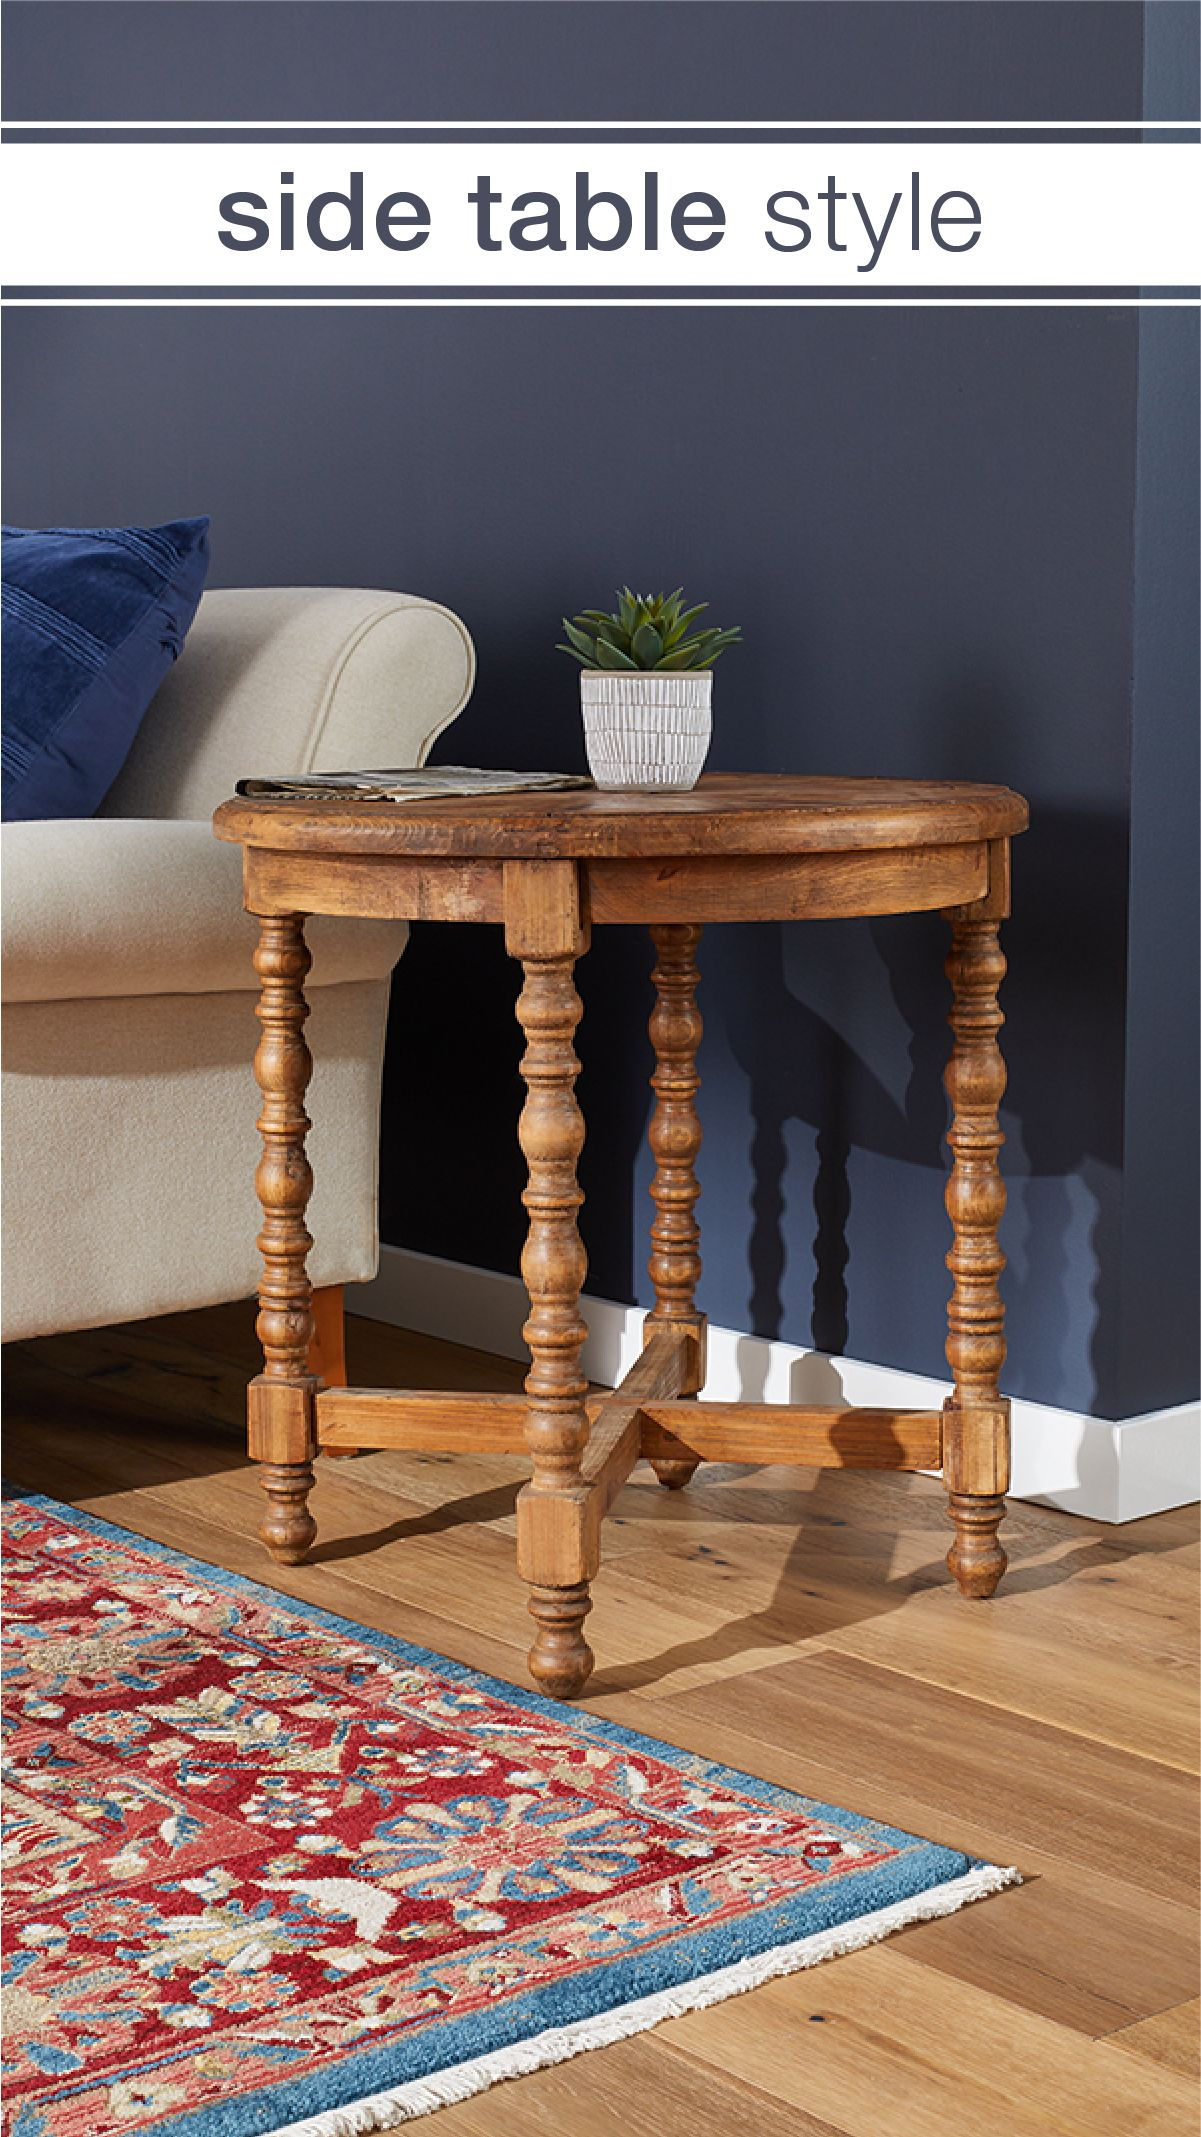 Save Big On Beautiful End Tables At Overstock Where You Ll Pay Less For High Quality Home Goods Endtables Li In 2020 Furniture Stylish Tables Living Room Furniture #types #of #living #room #tables